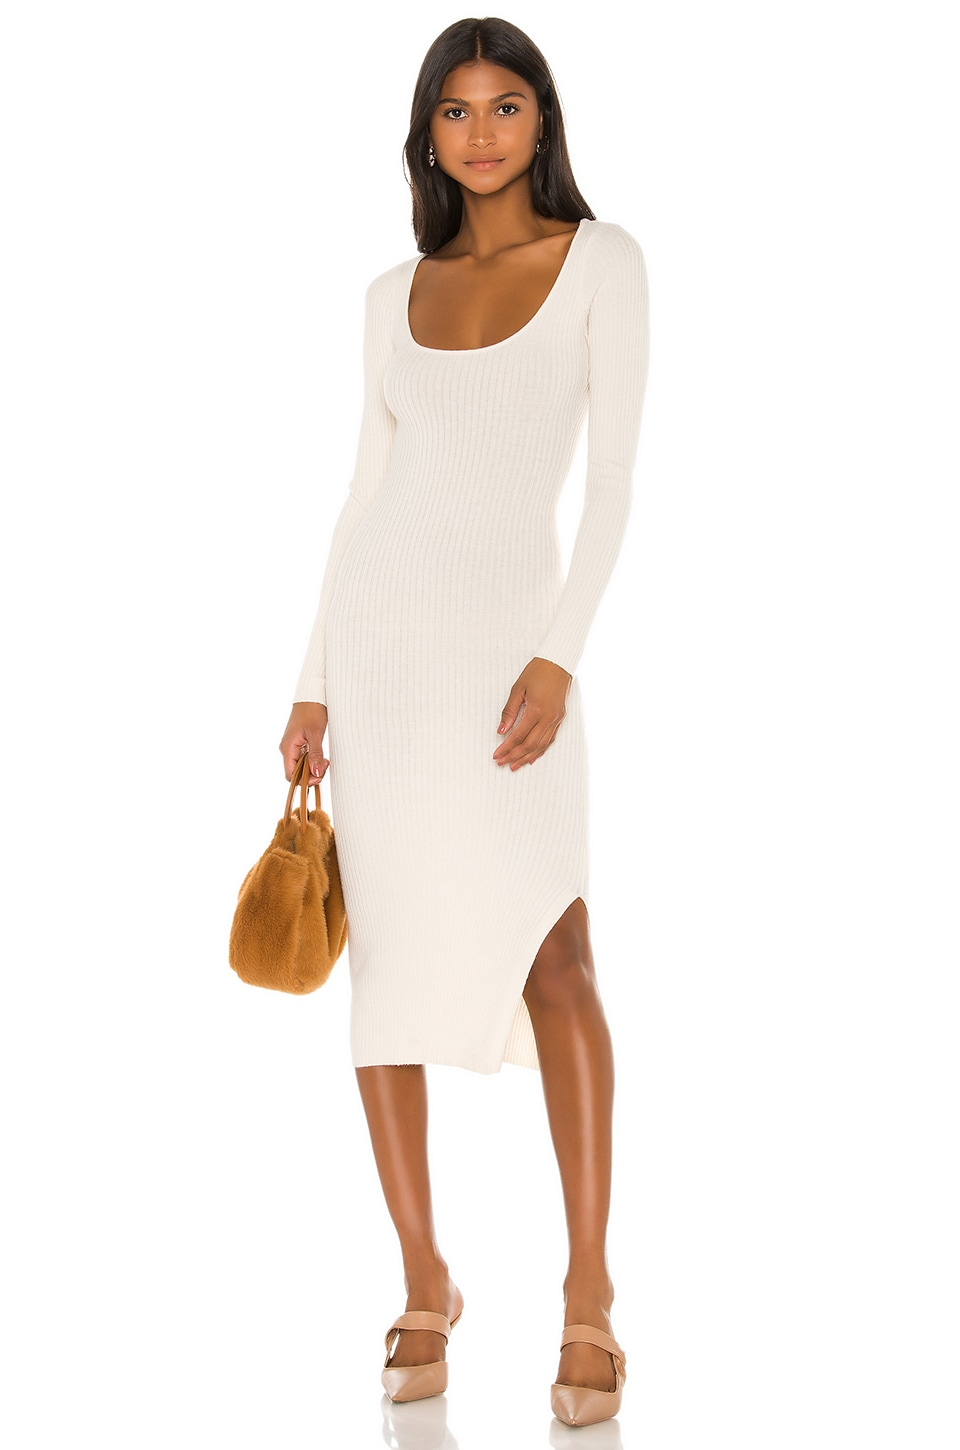 L'Academie Nessa Sweater Dress in Cream